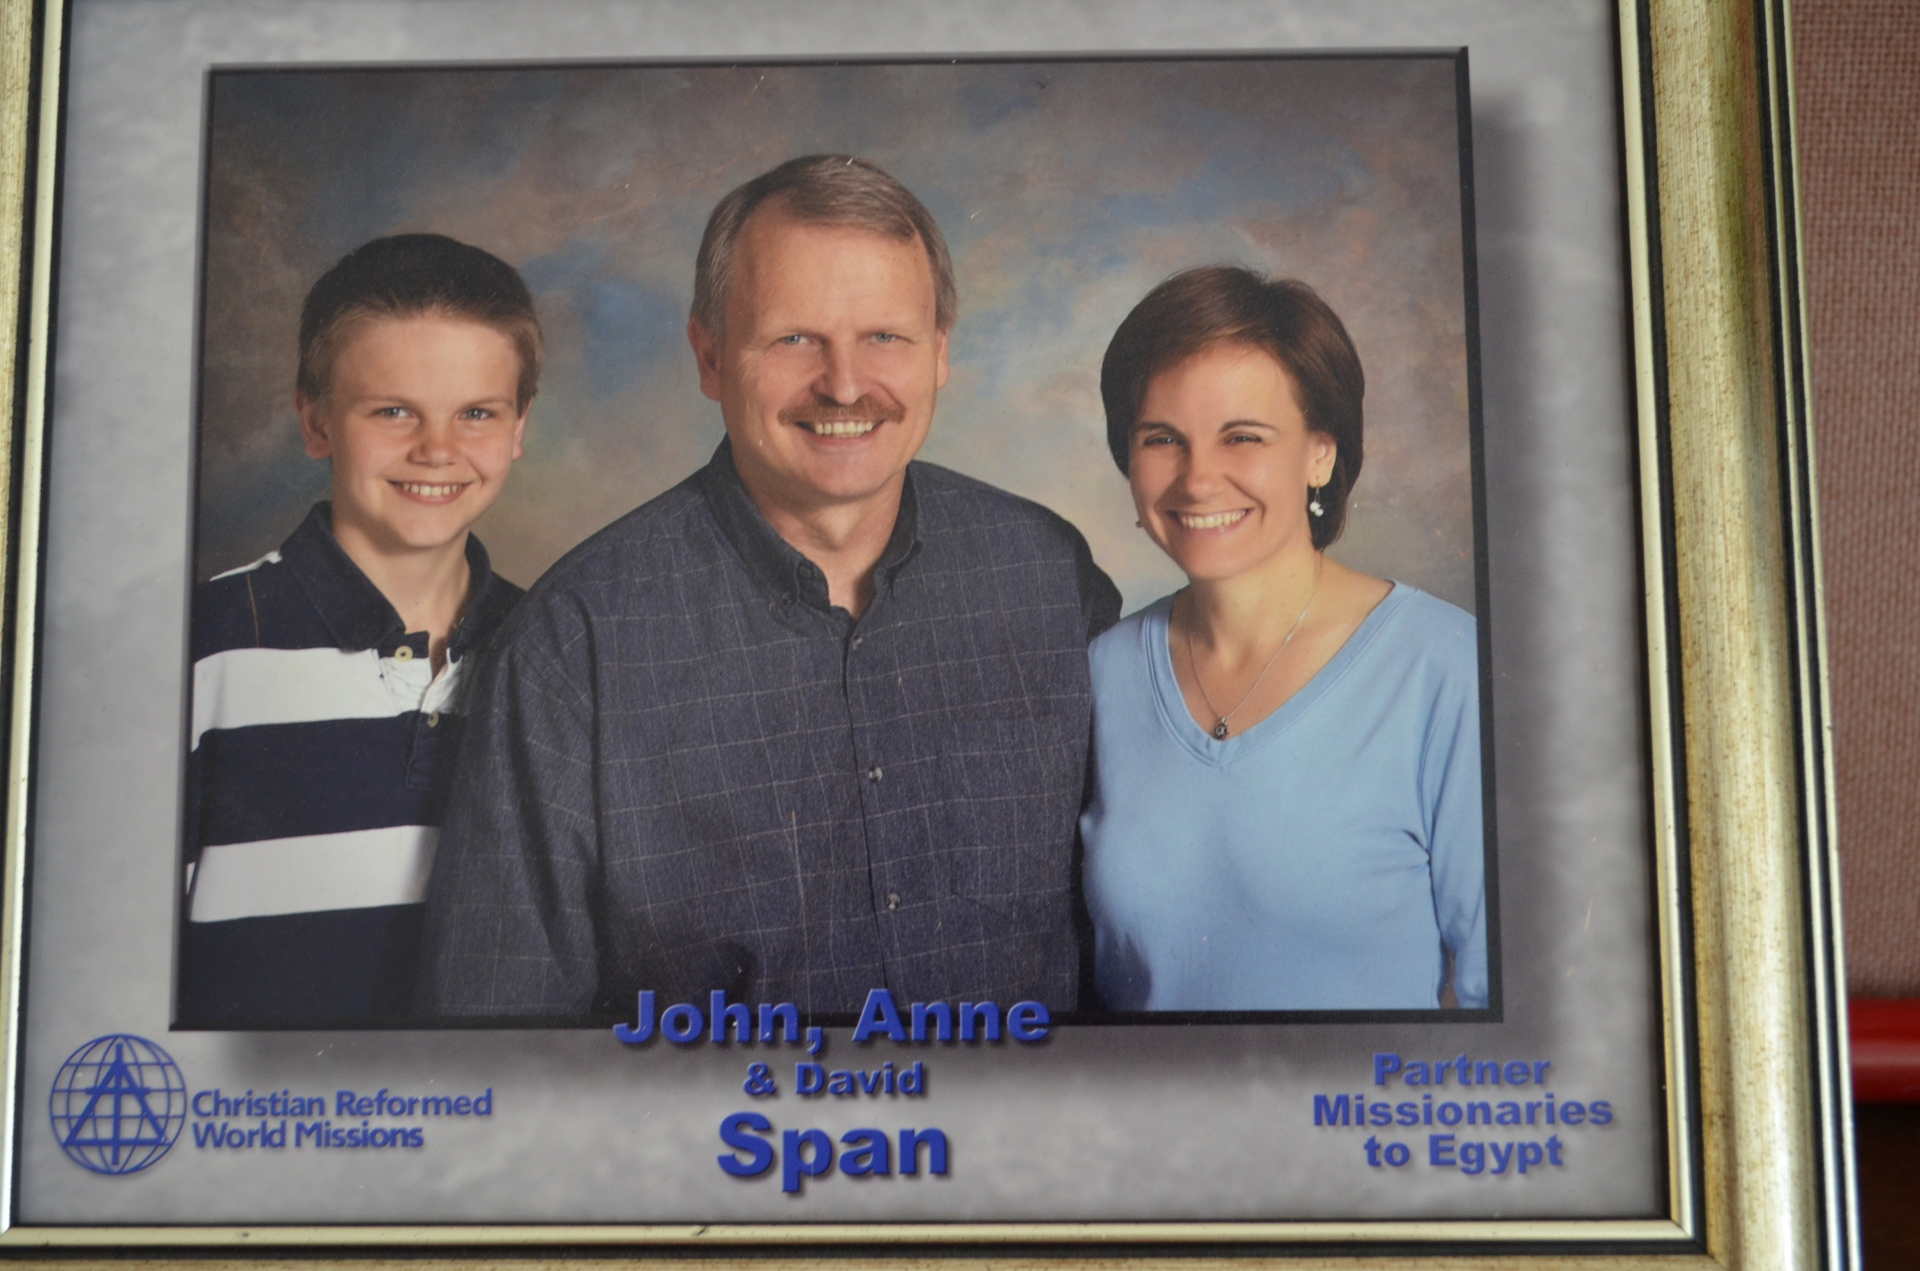 The Span Family